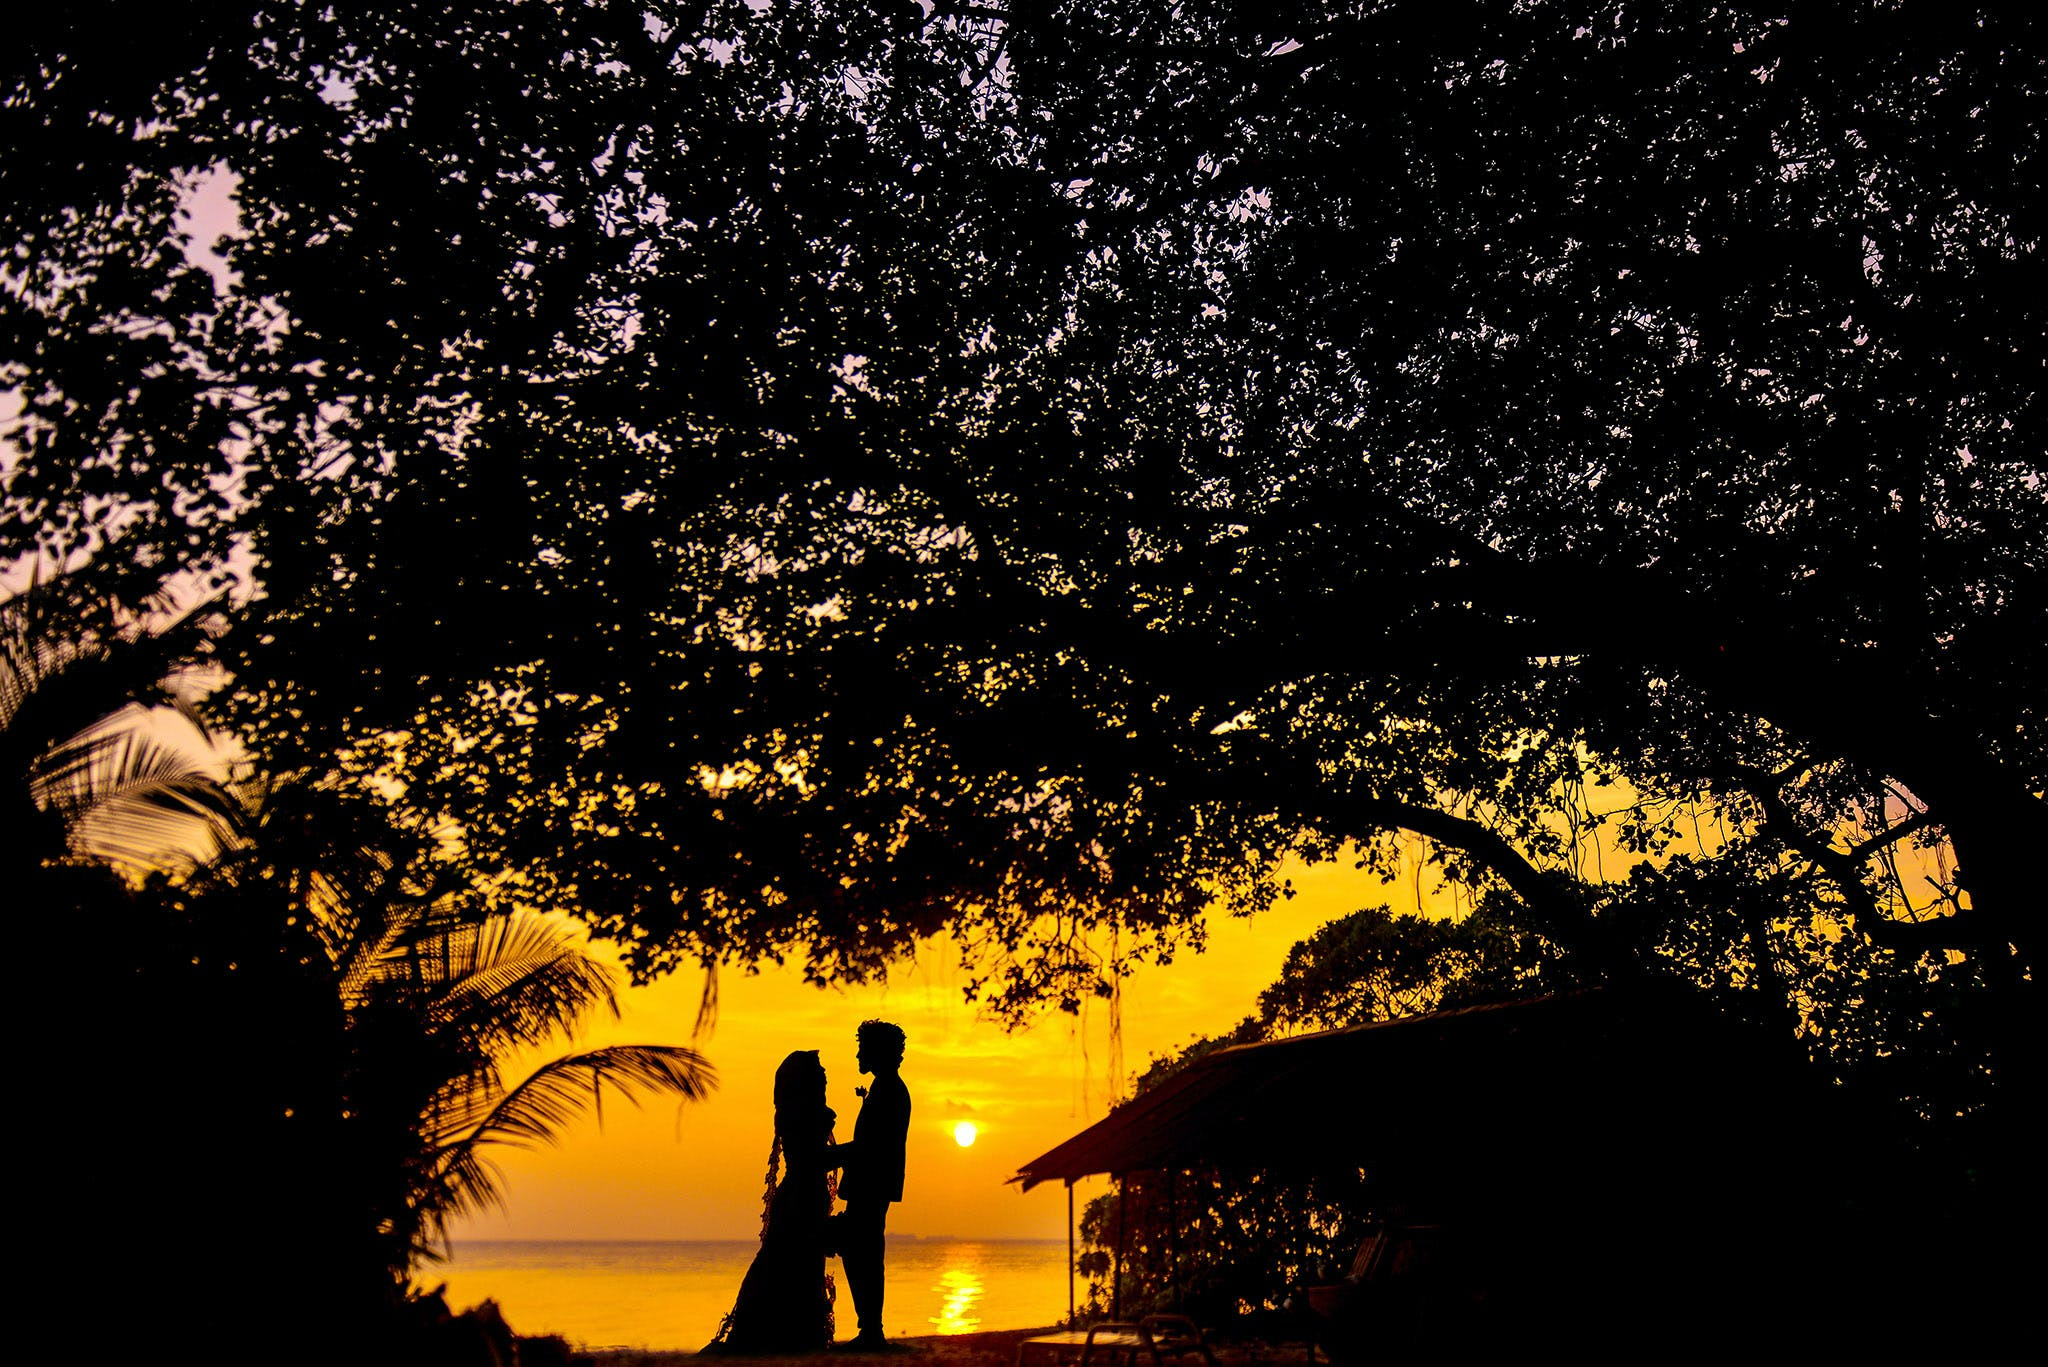 Silhouette Photo of Man and Woman during Sunset